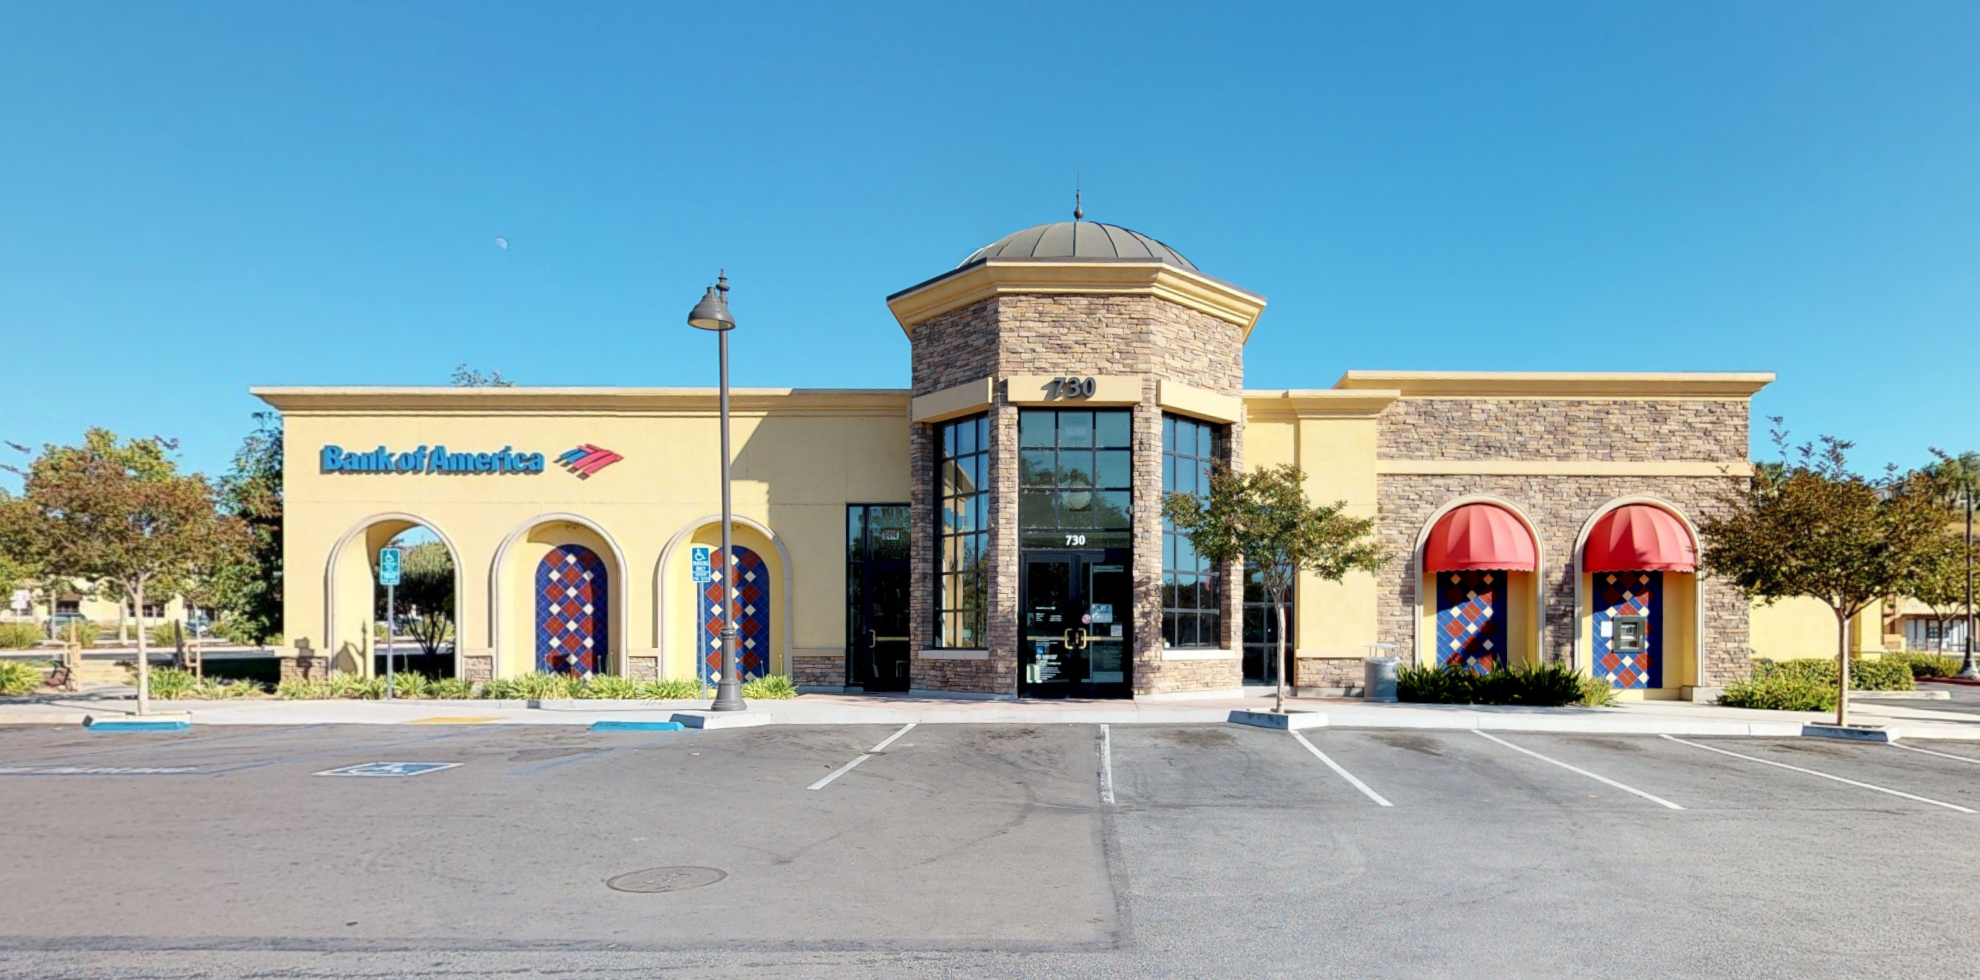 Bank of America financial center with walk-up ATM | 730 New Los Angeles Ave, Moorpark, CA 93021